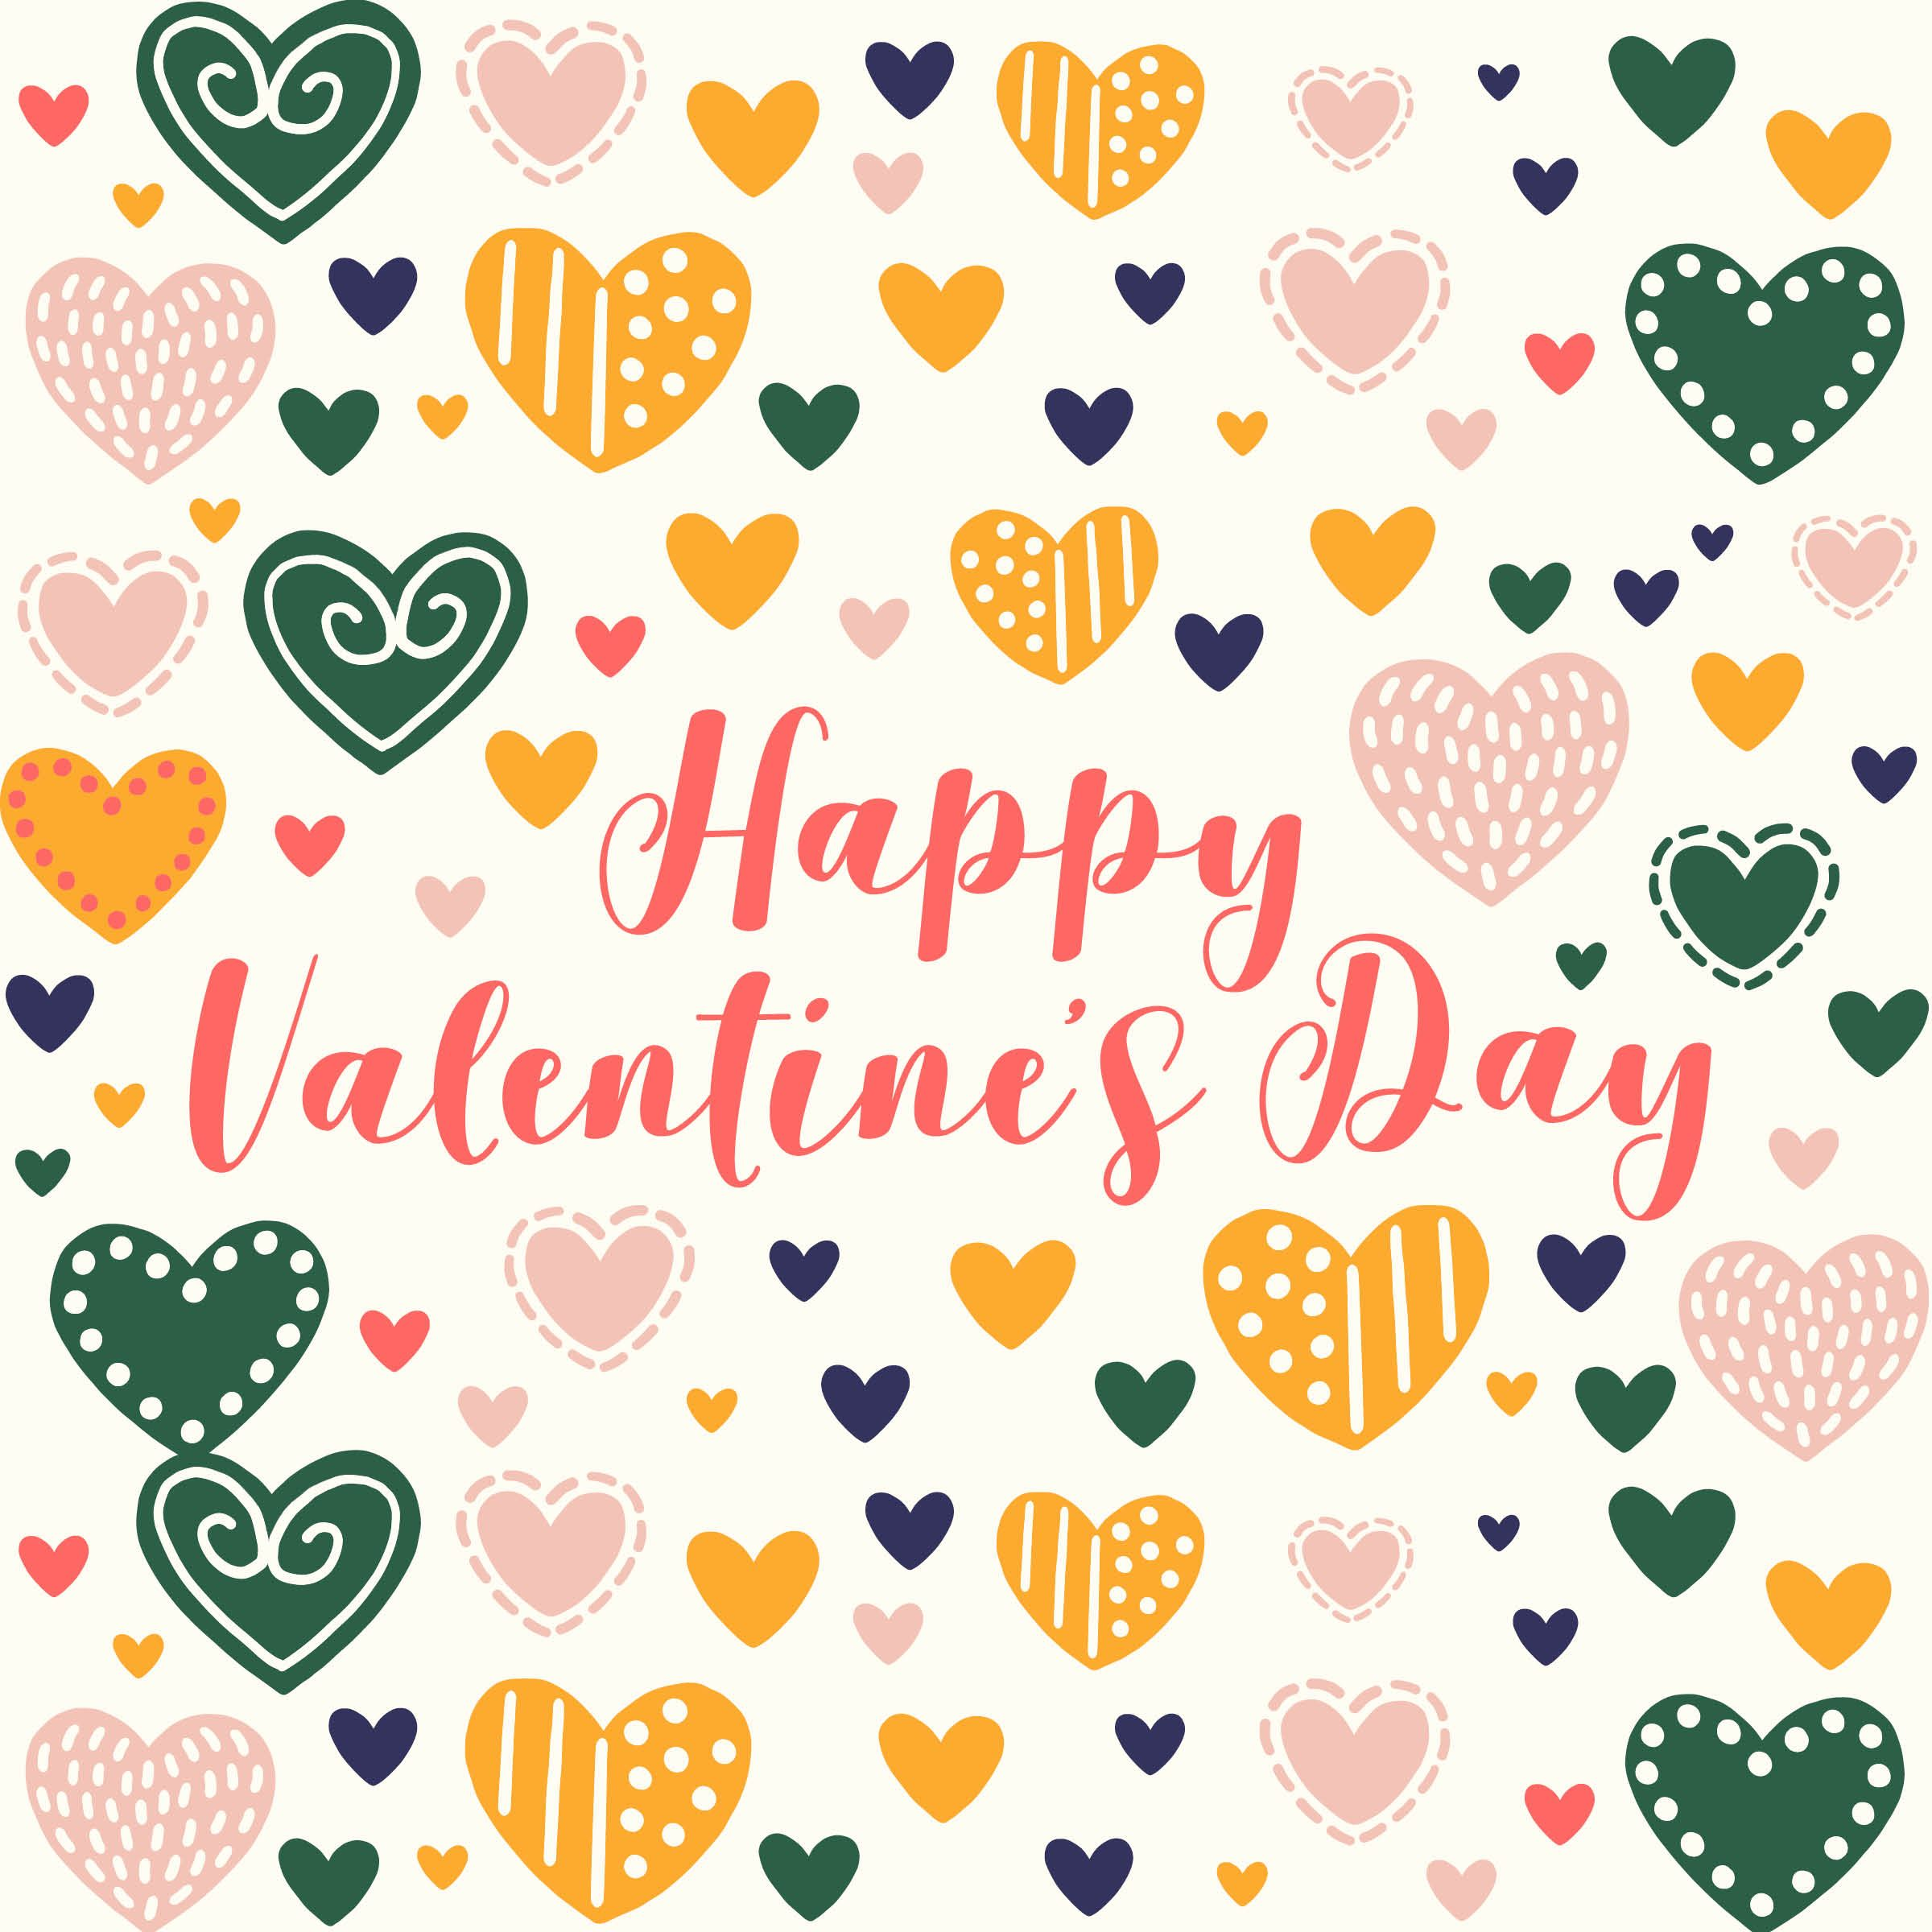 20 Cute Valentine's Day Quotes   Romantic Quotes About Love